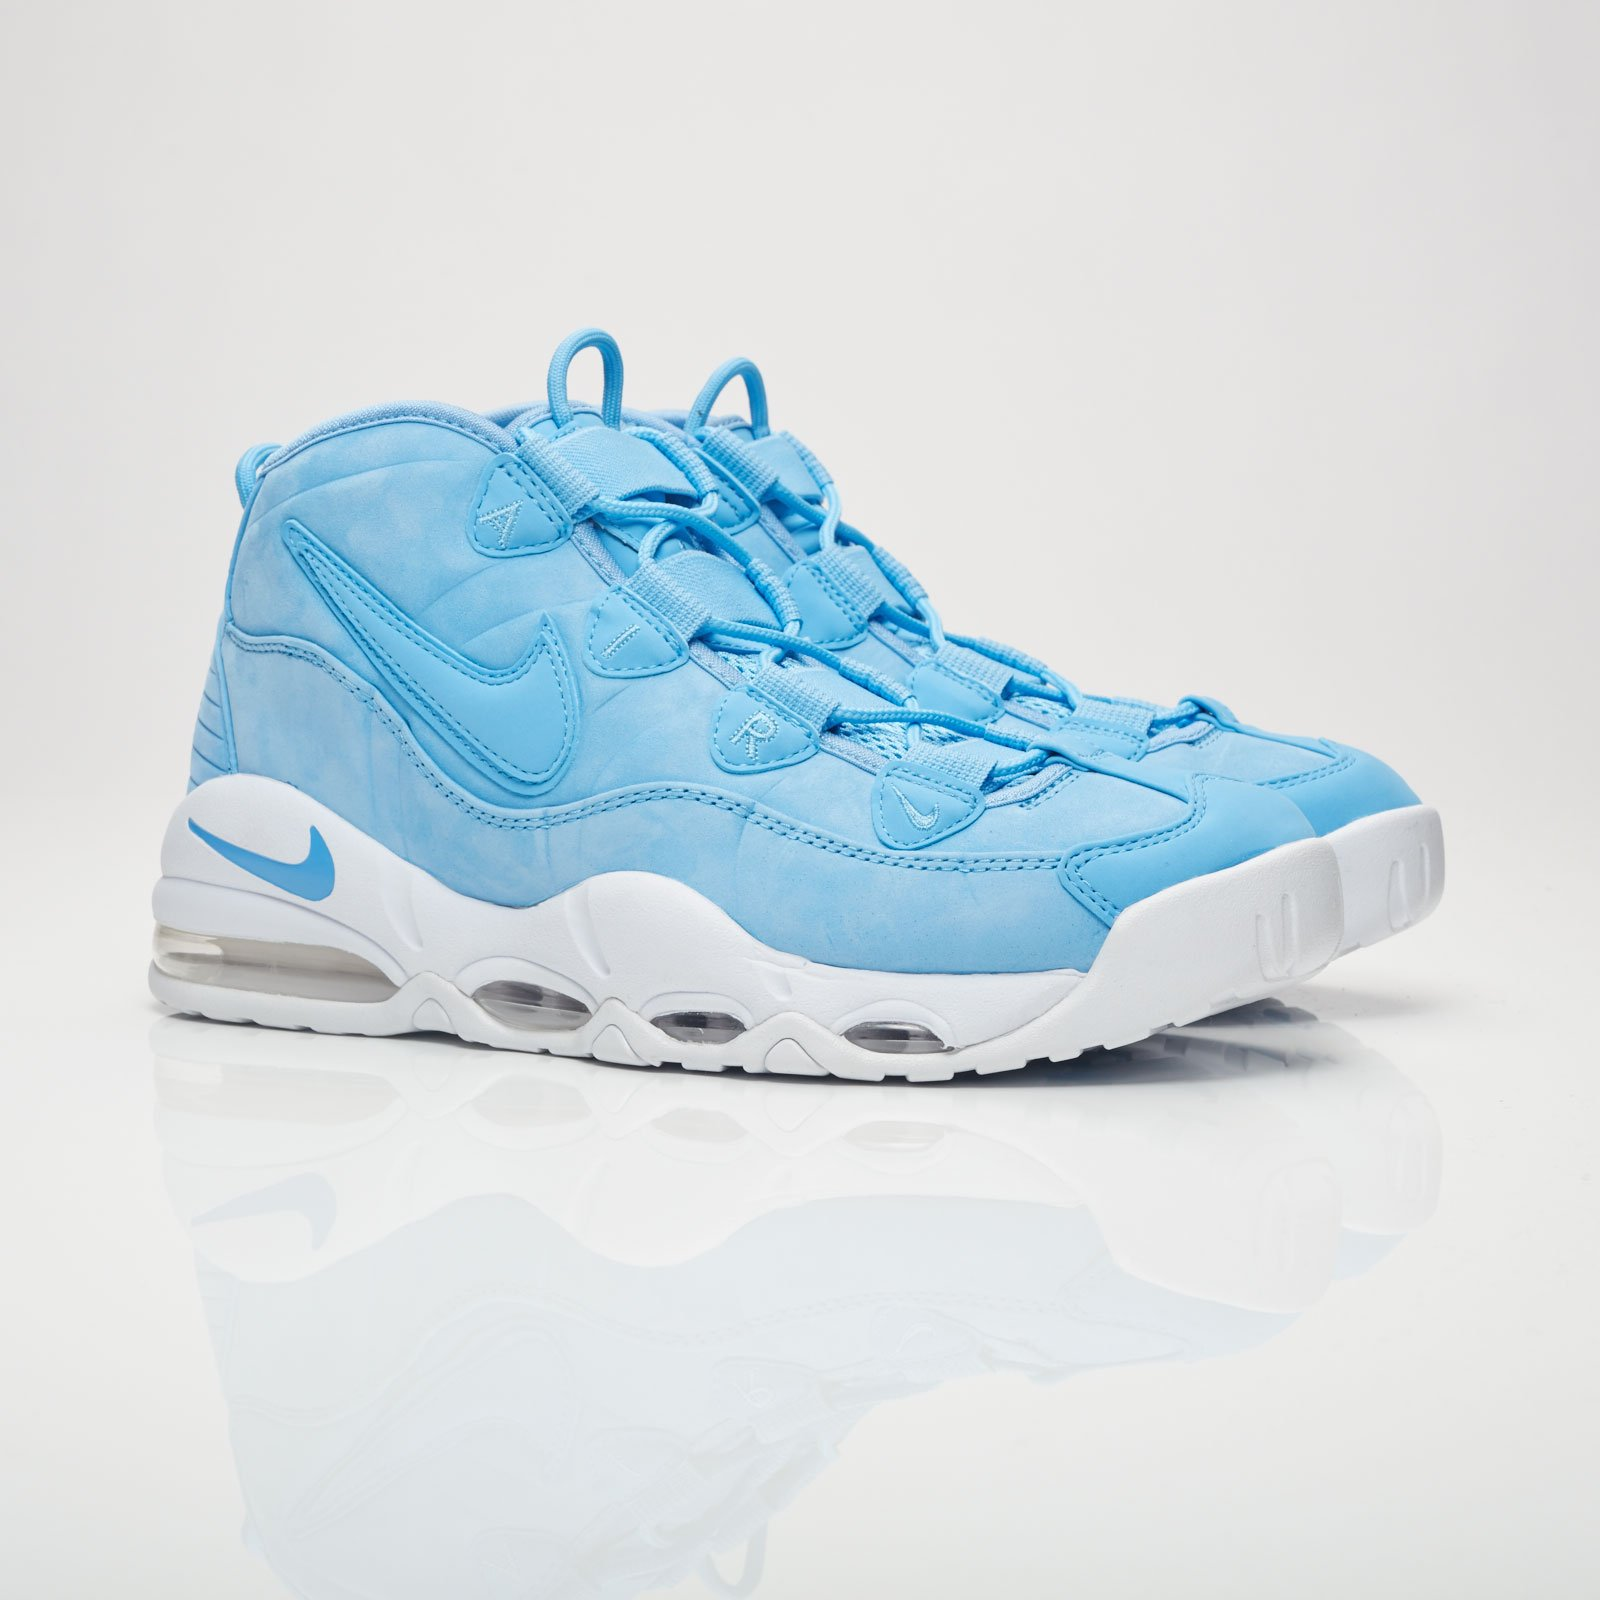 7d7c76266bf Nike Air Max Uptempo 95 As Qs - 922932-400 - Sneakersnstuff ...